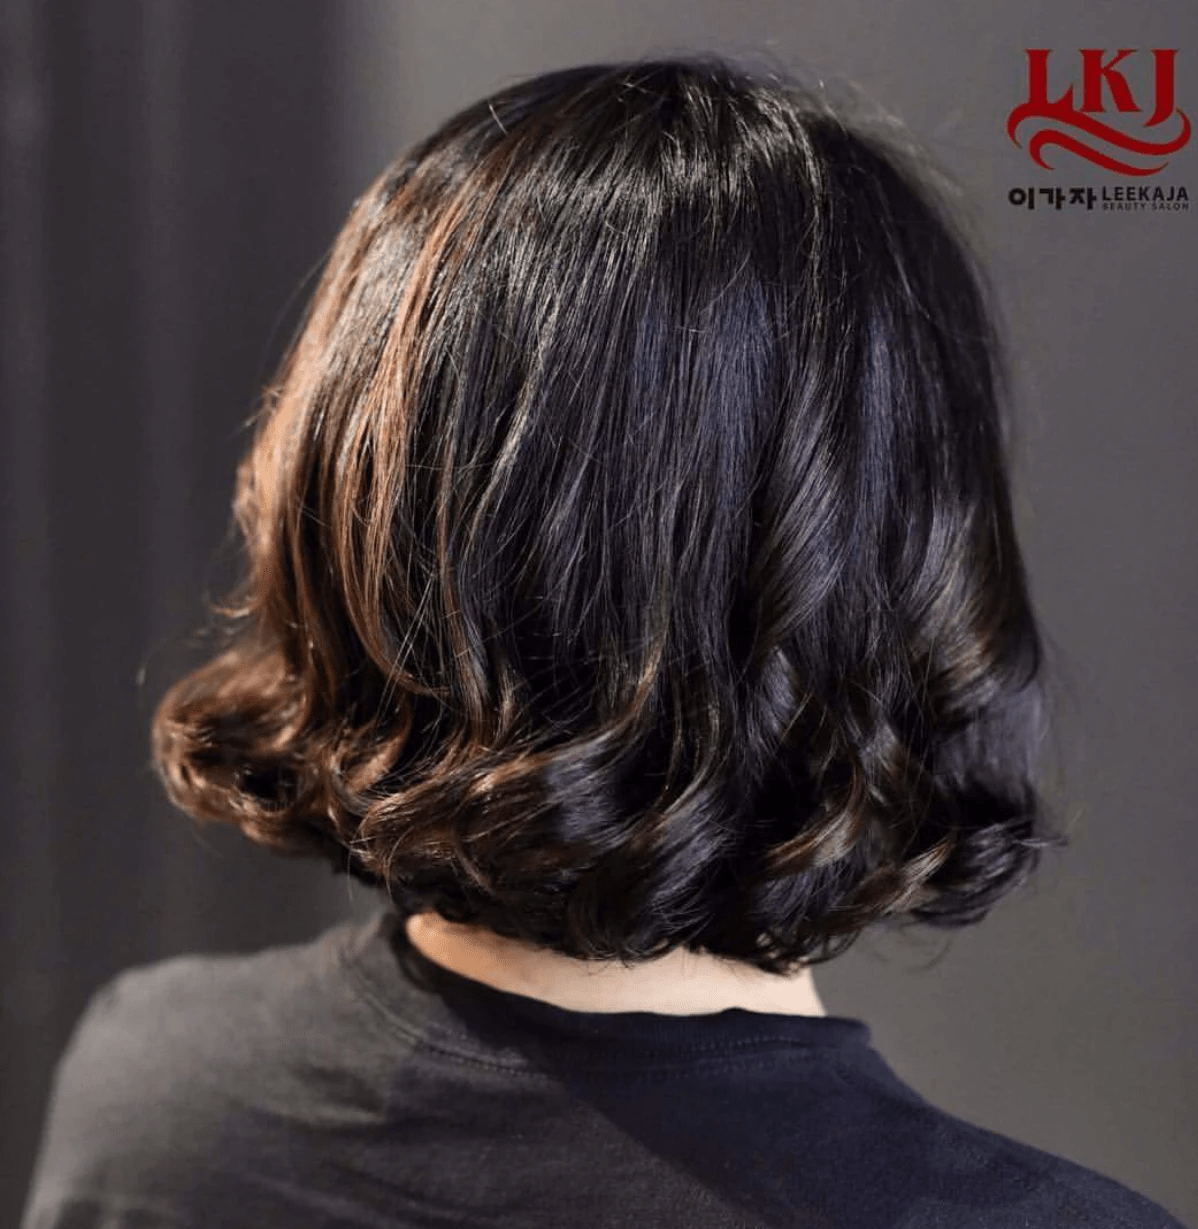 Short hairstyles for women - curly bob